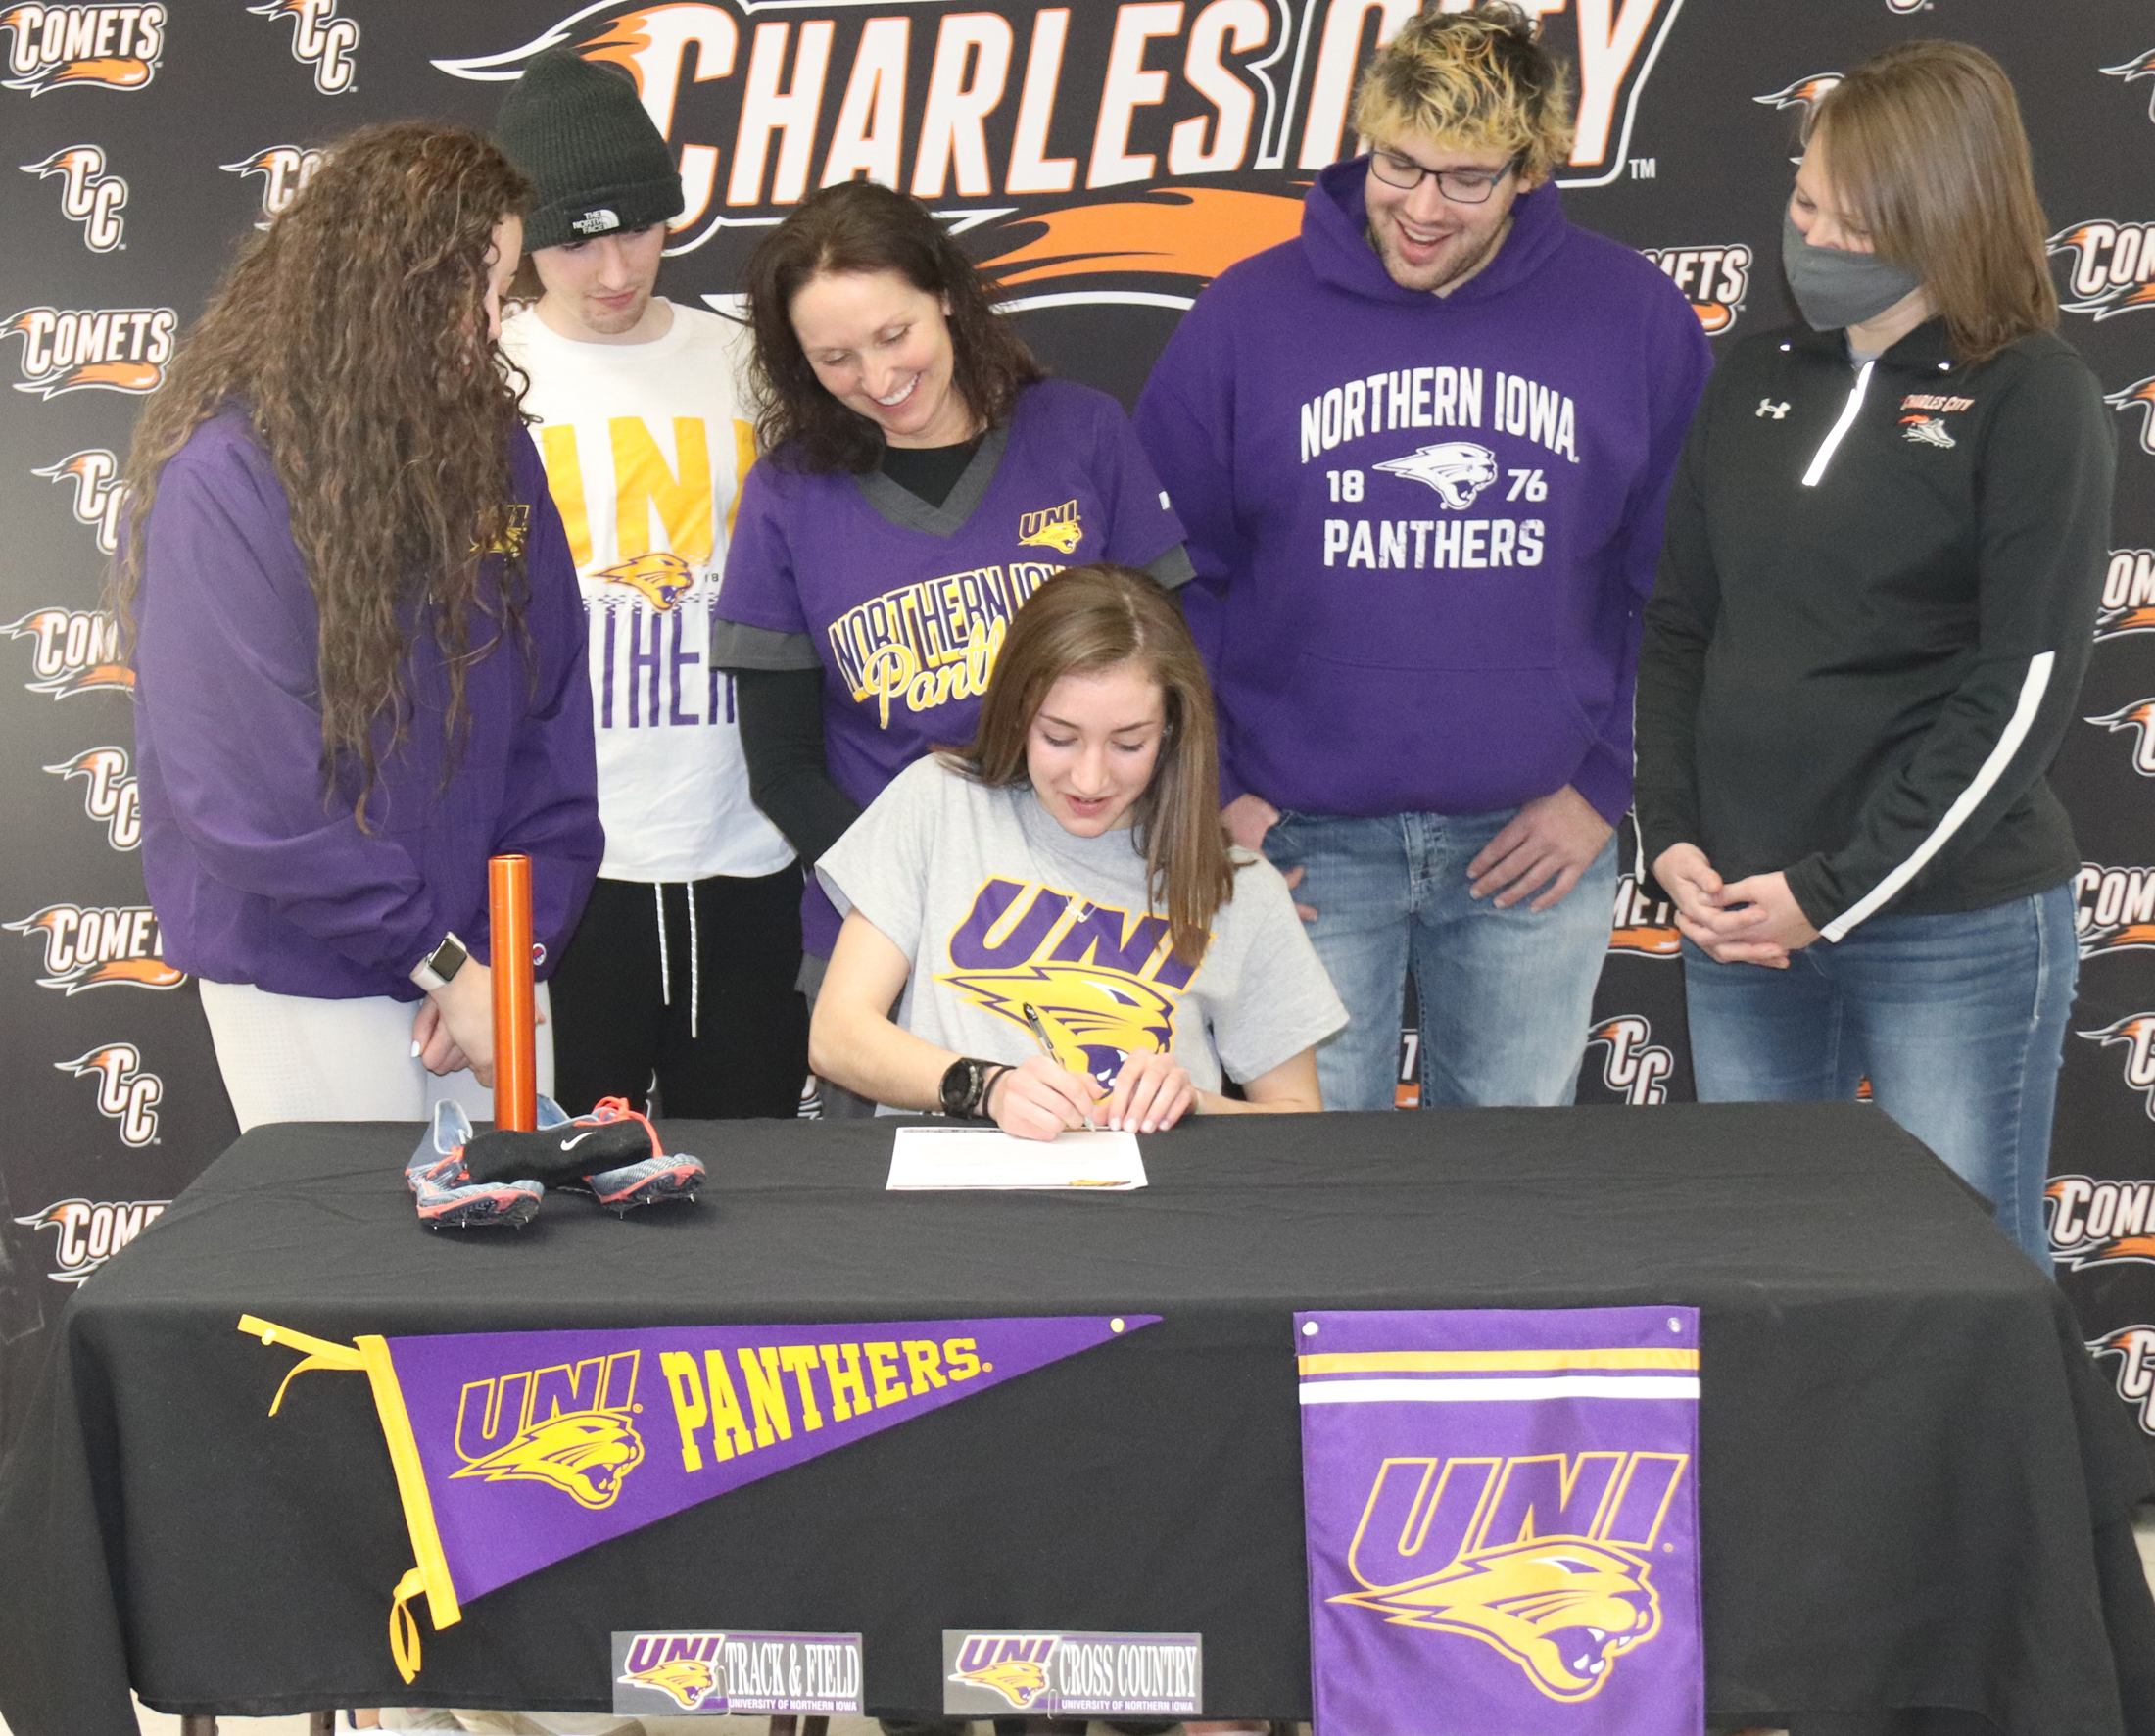 Kiki Connell signs to run for UNI Panthers